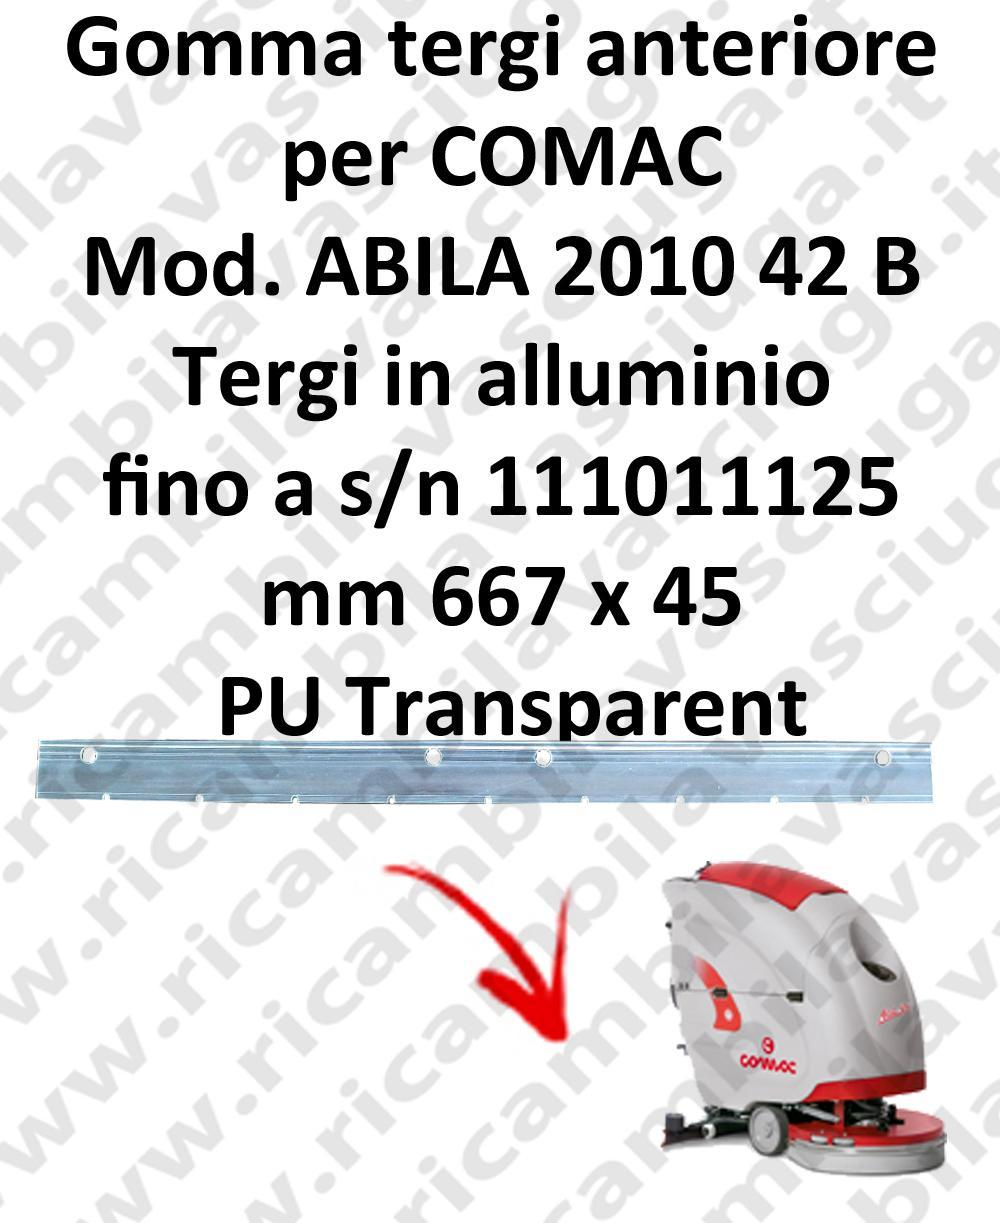 ABILA 2010 42 B - BT till s/n 111011125 Front Squeegee rubber for COMAC accessories, reaplacement, spare parts,o scrubber dryer squeegee